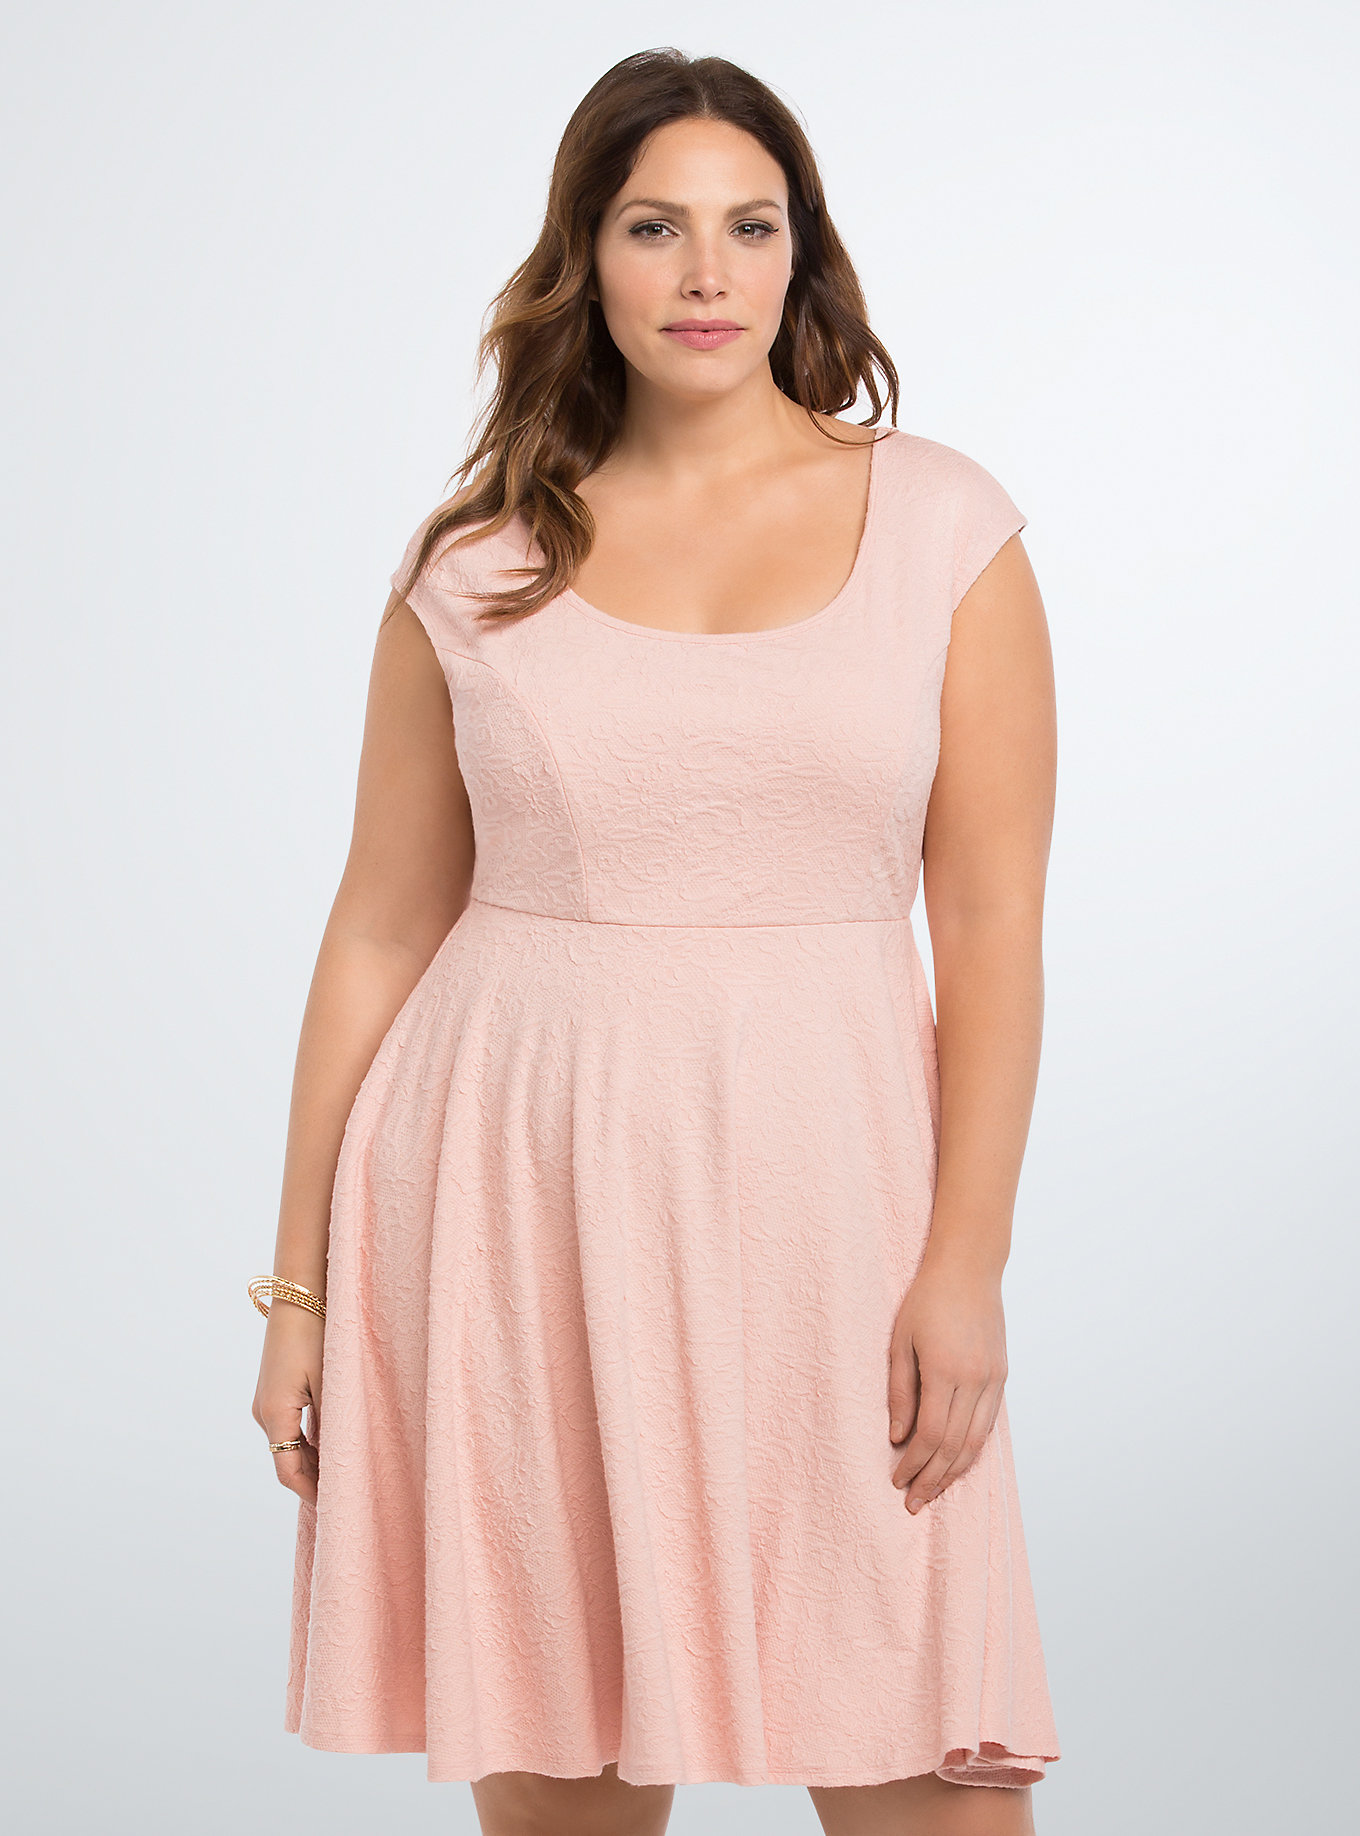 Double Knit Skater Dress at Torrid